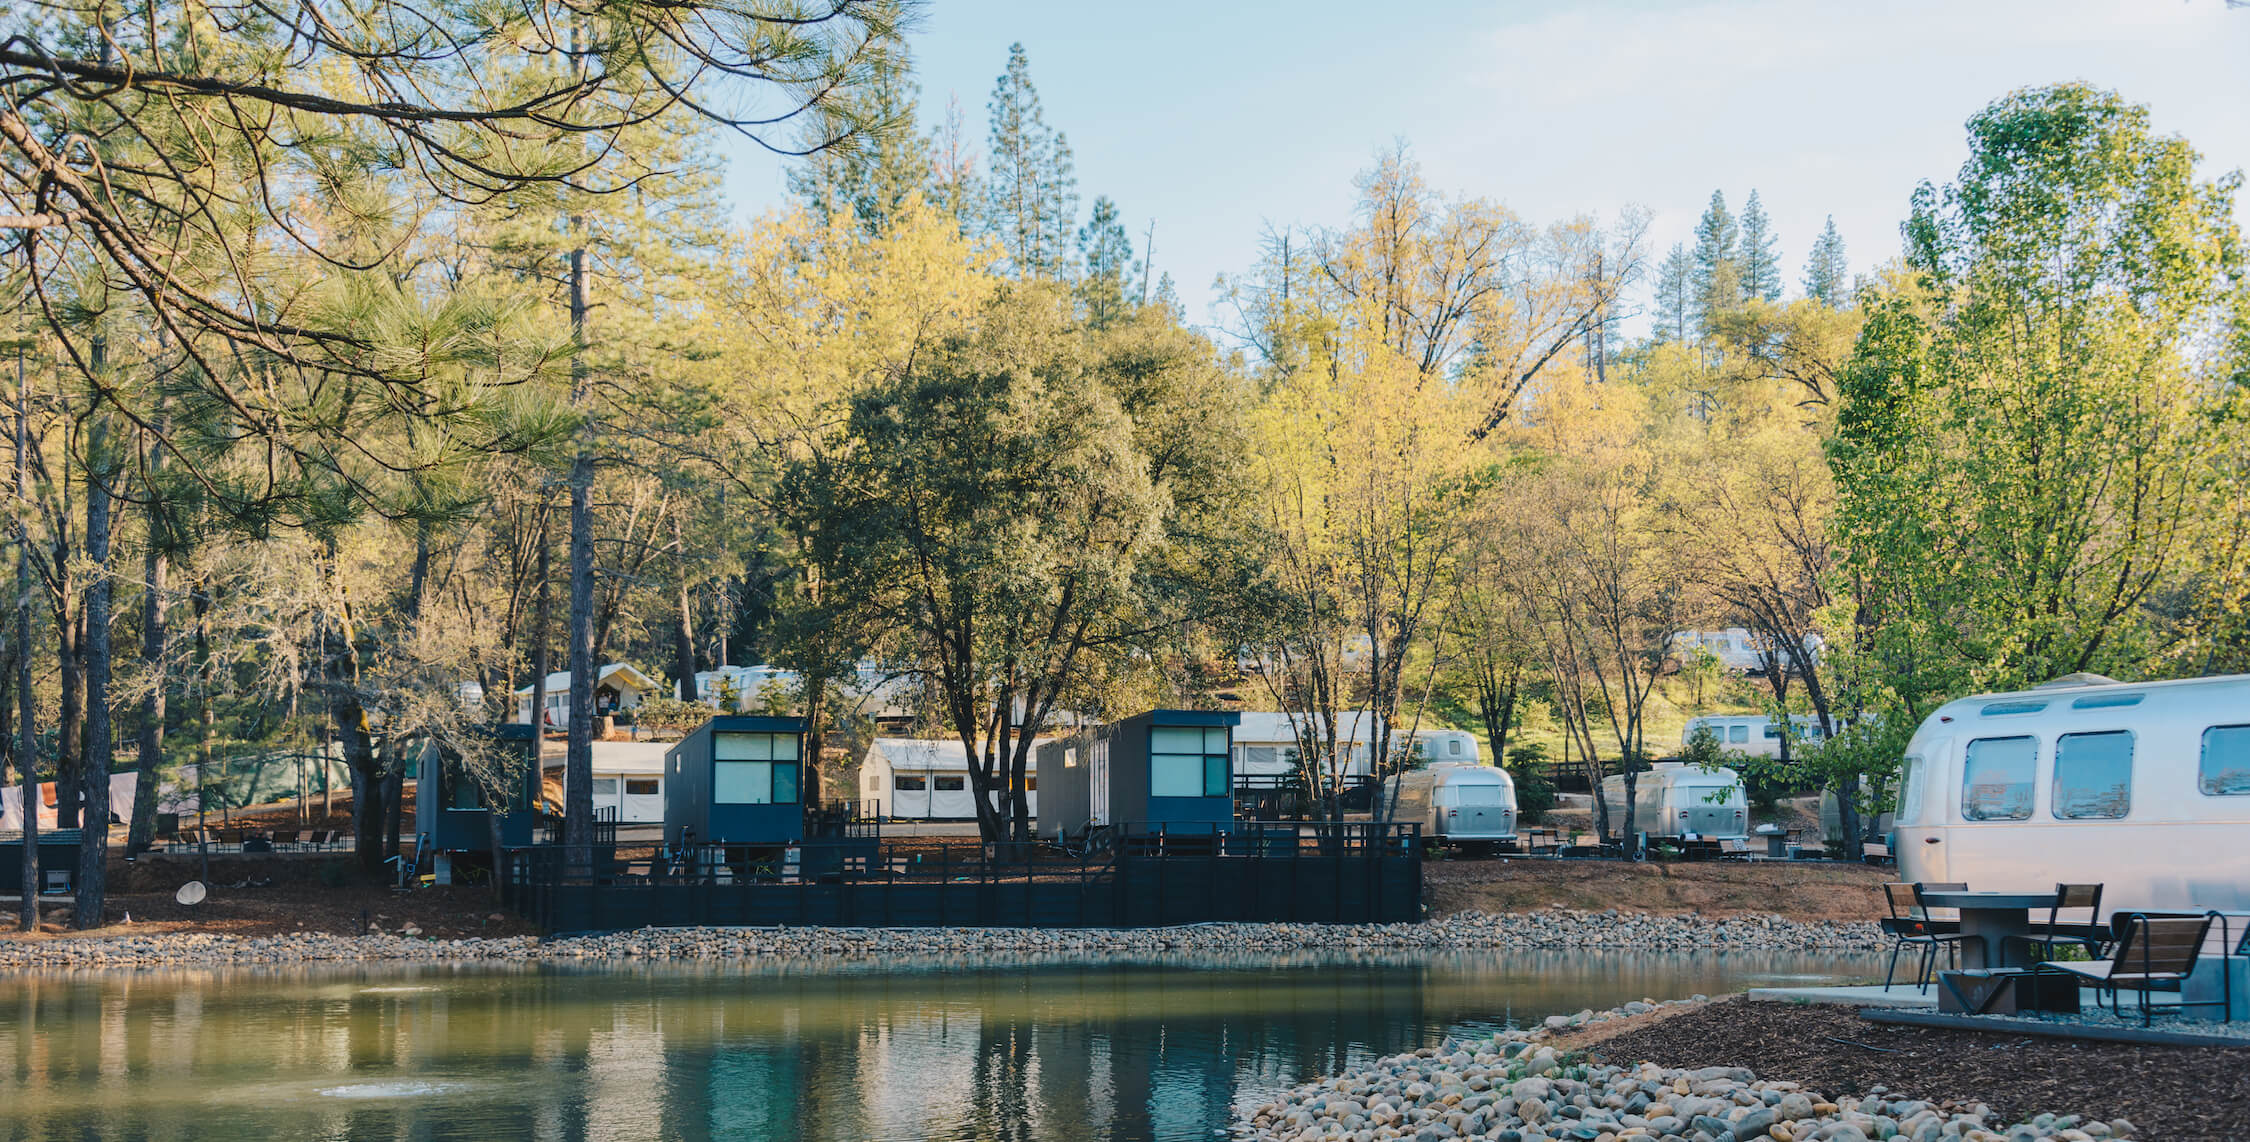 Autocamps Yosemite, luxury camping, glamping, trailer park view